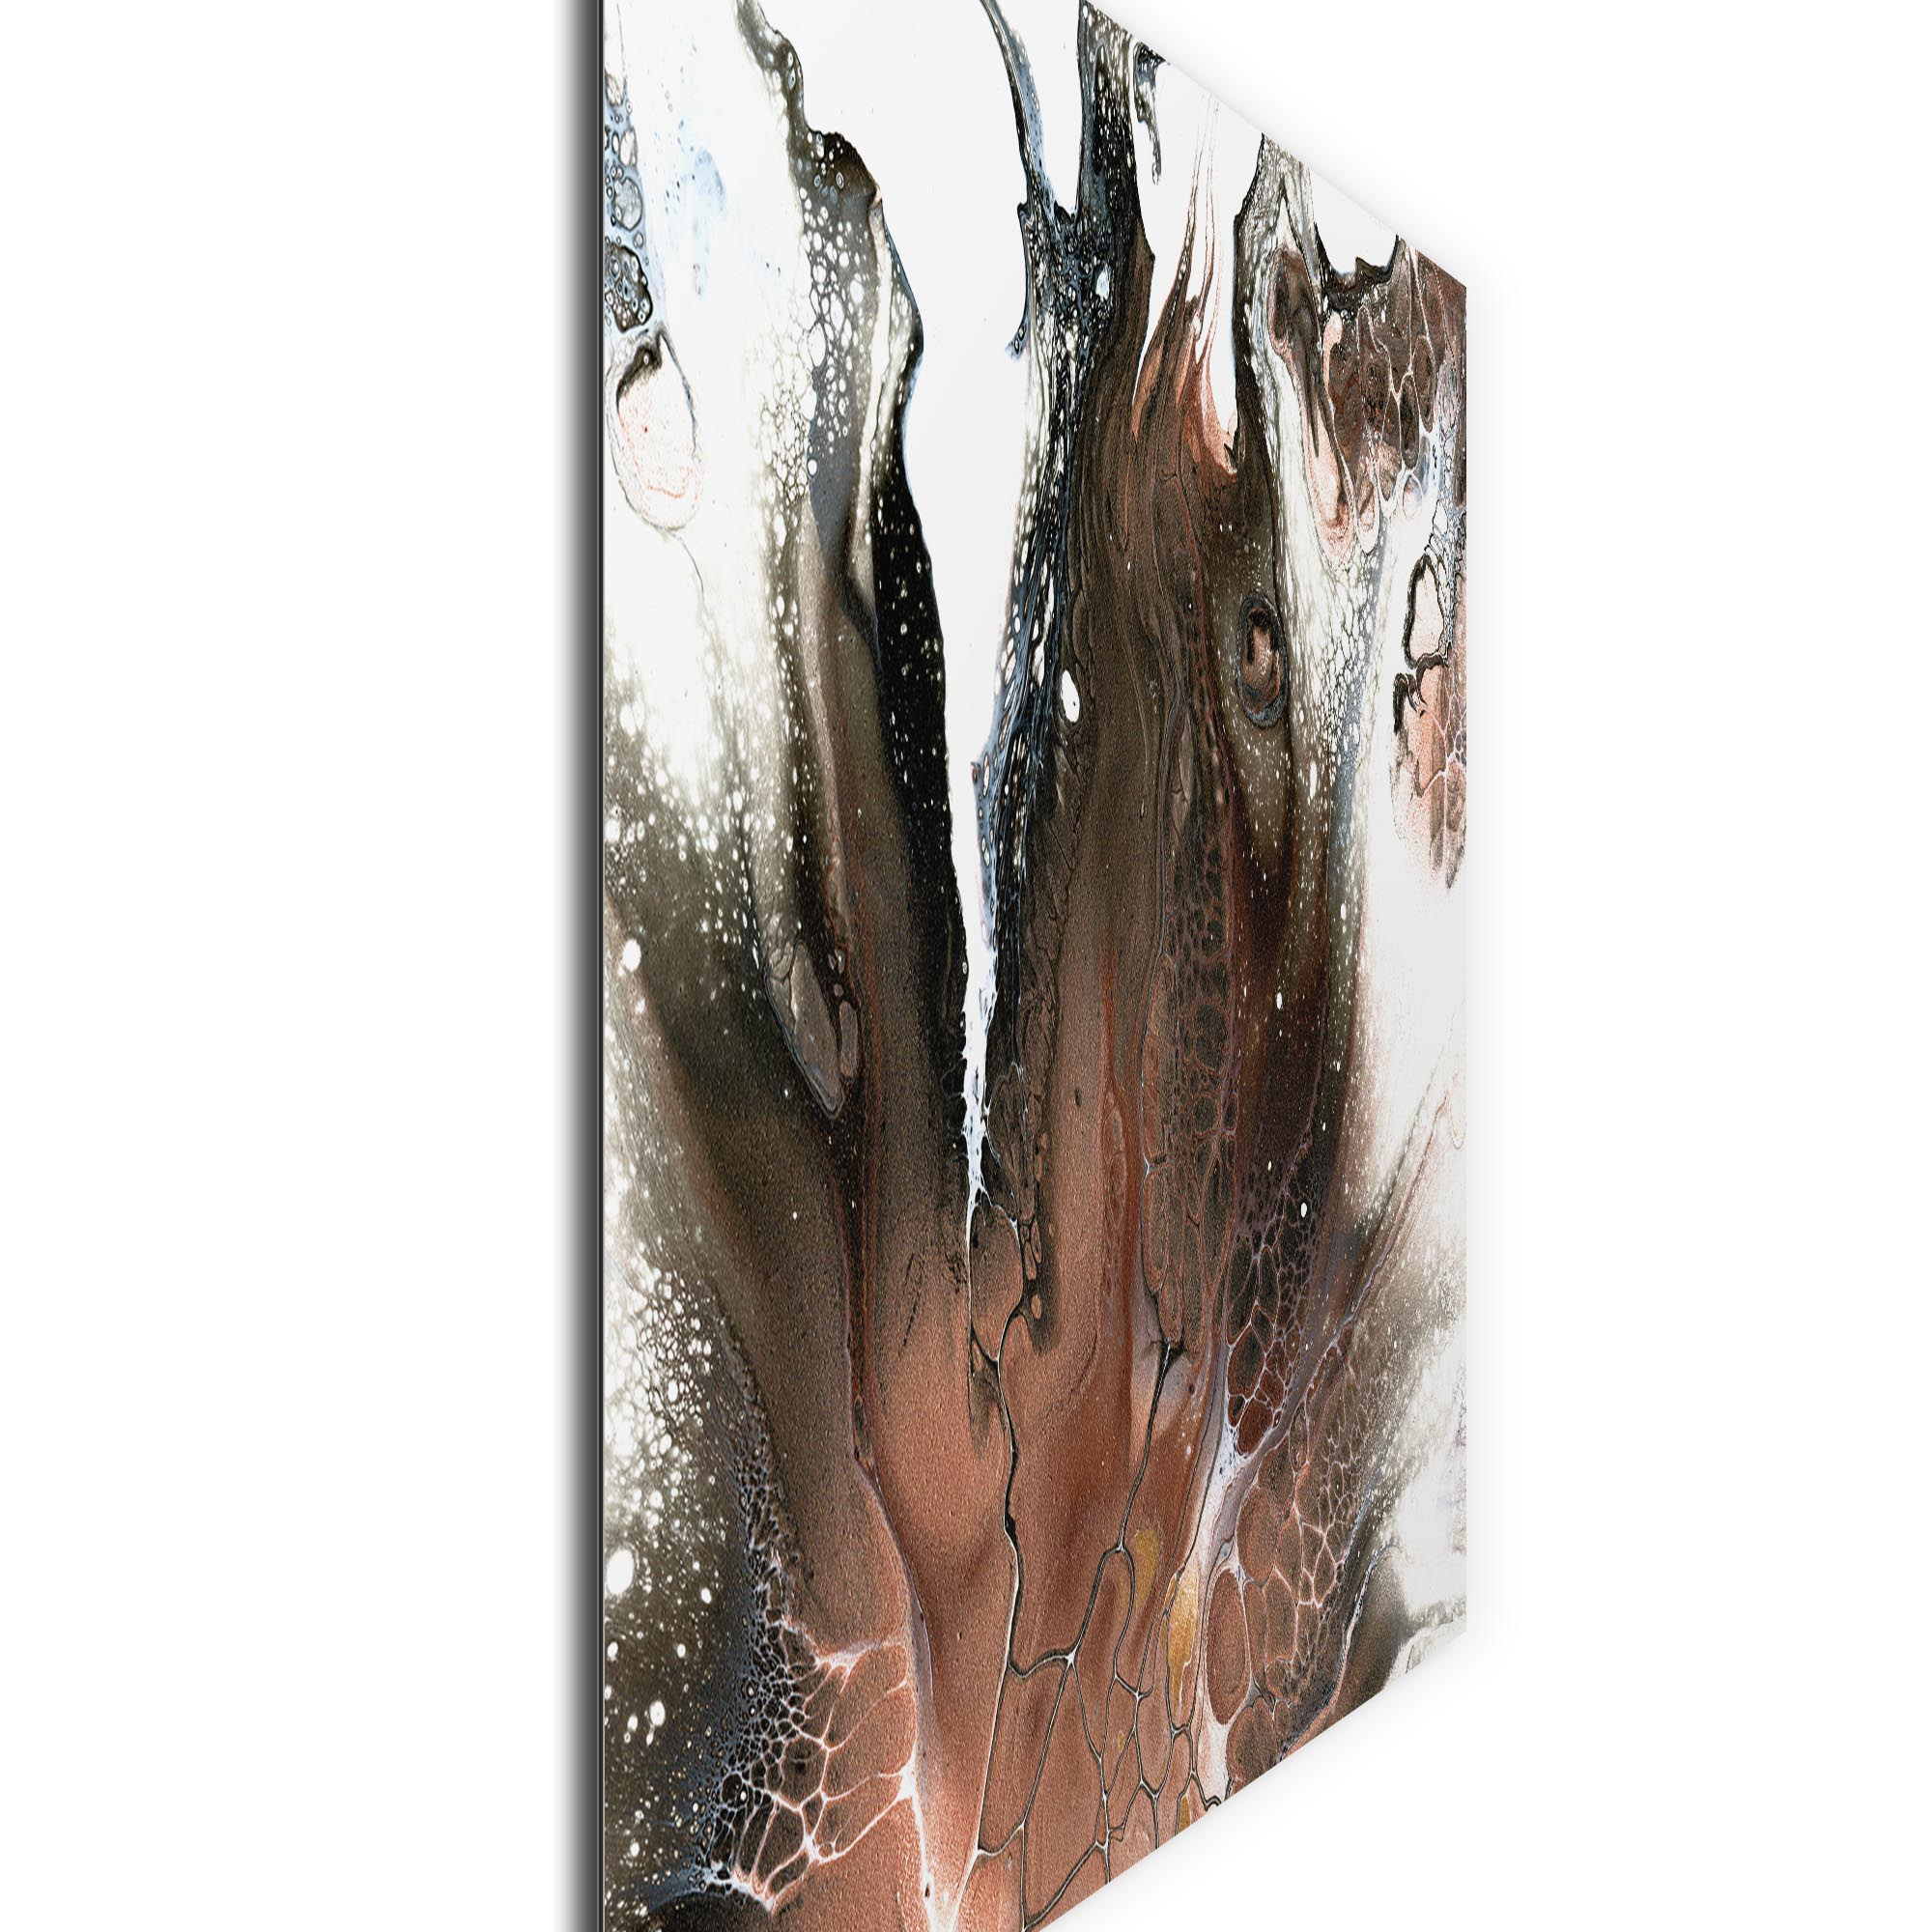 Ashen by Elana Reiter - Abstract Wall Art, Modern Home Decor (32in x 24in) - Image 2